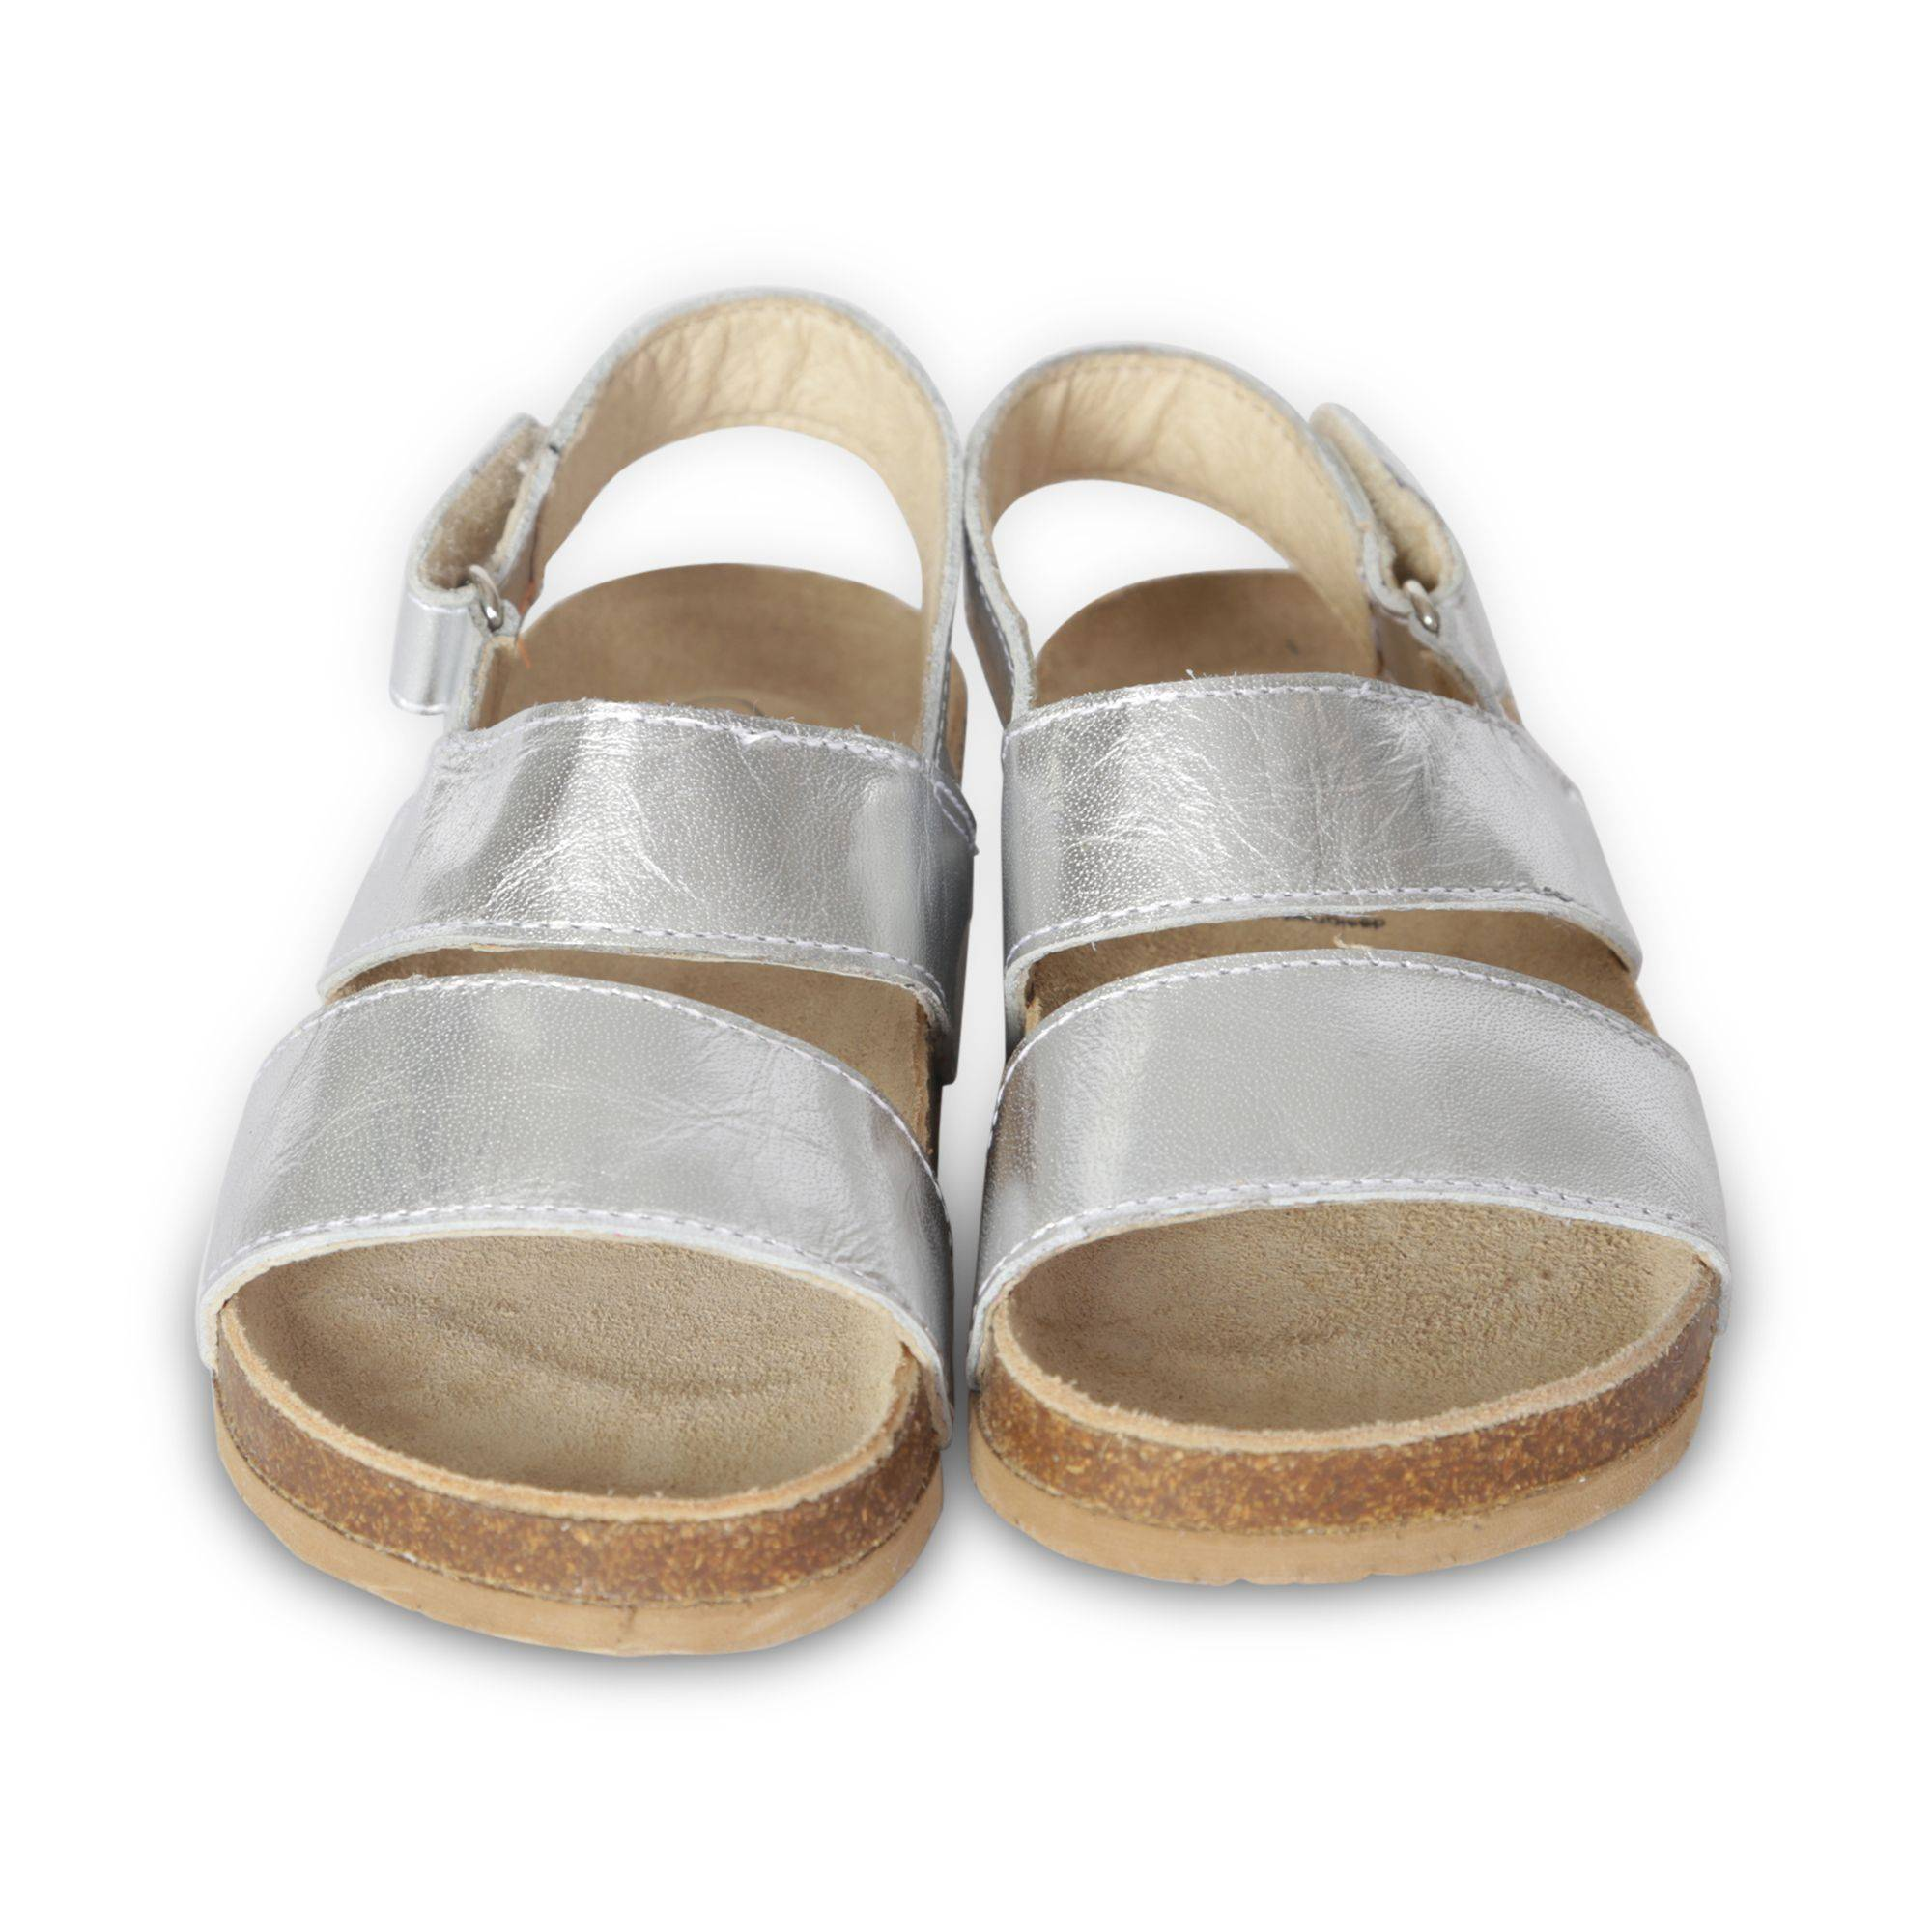 Old Soles Girls Sandal (8 jnr)